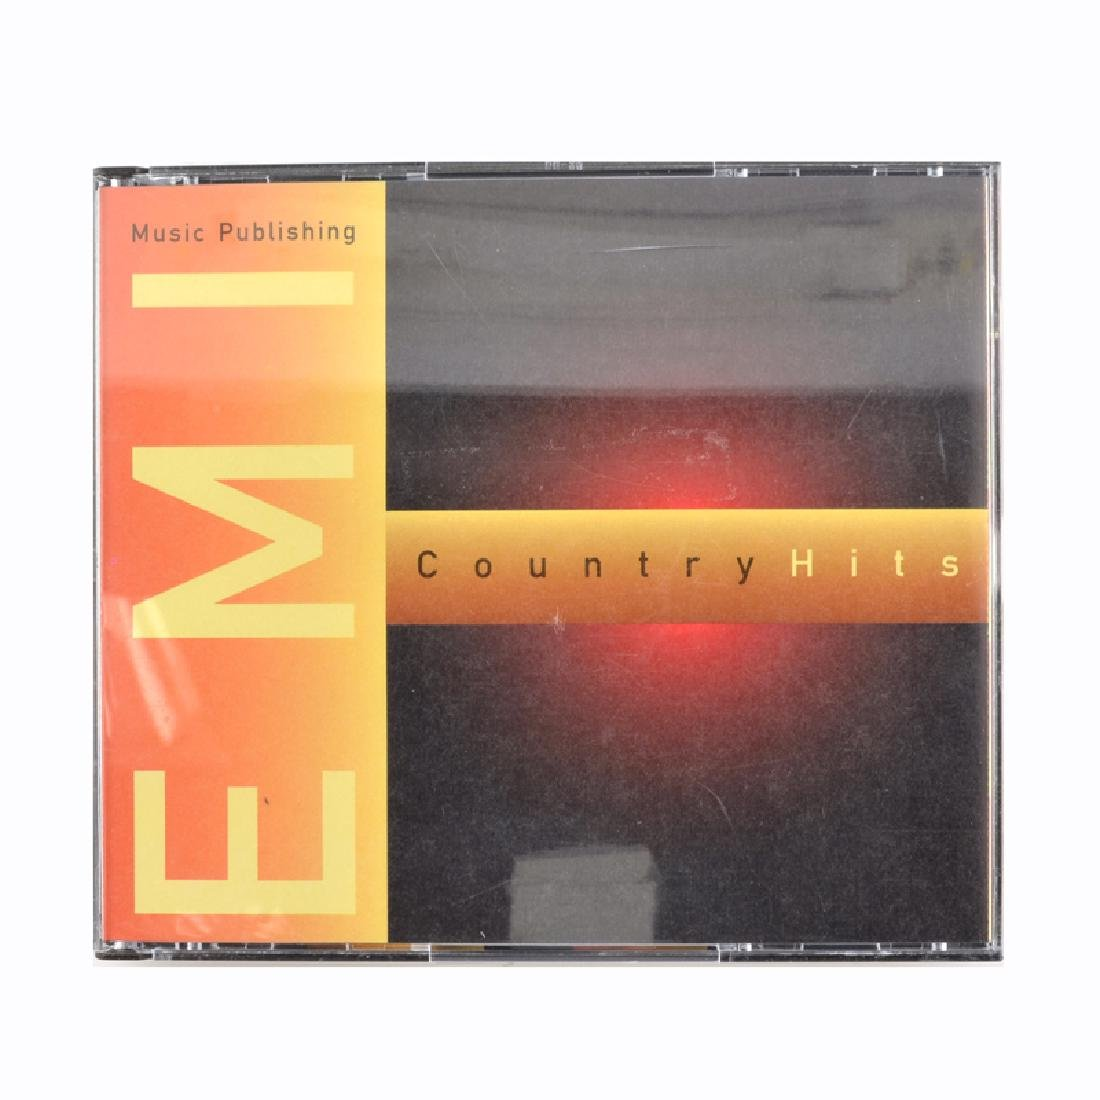 EMI Music Publishing, Country Hits 4 CDs Set